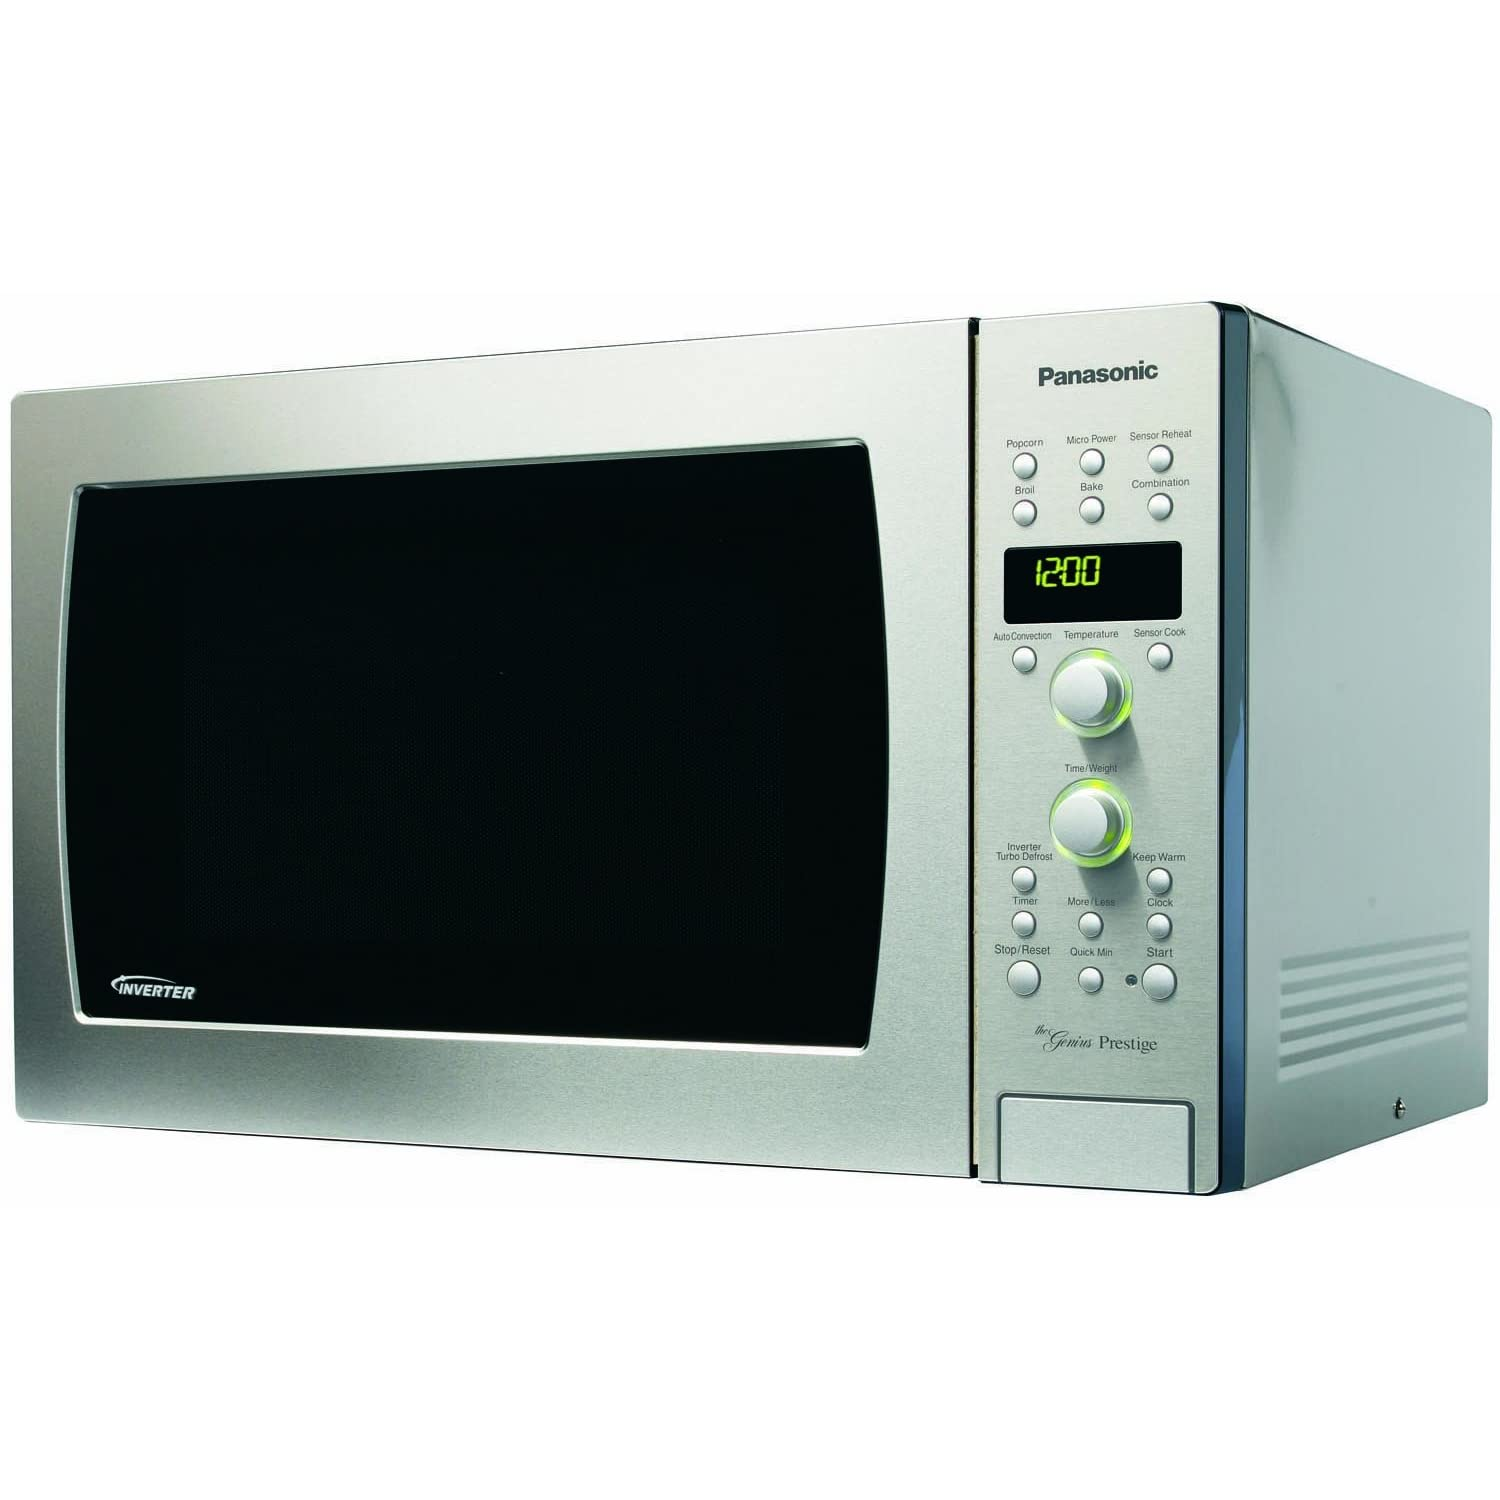 Convection Oven Vs Convection Microwave: Microwave Ovens Vs. Microwave/Convection Ovens Vs